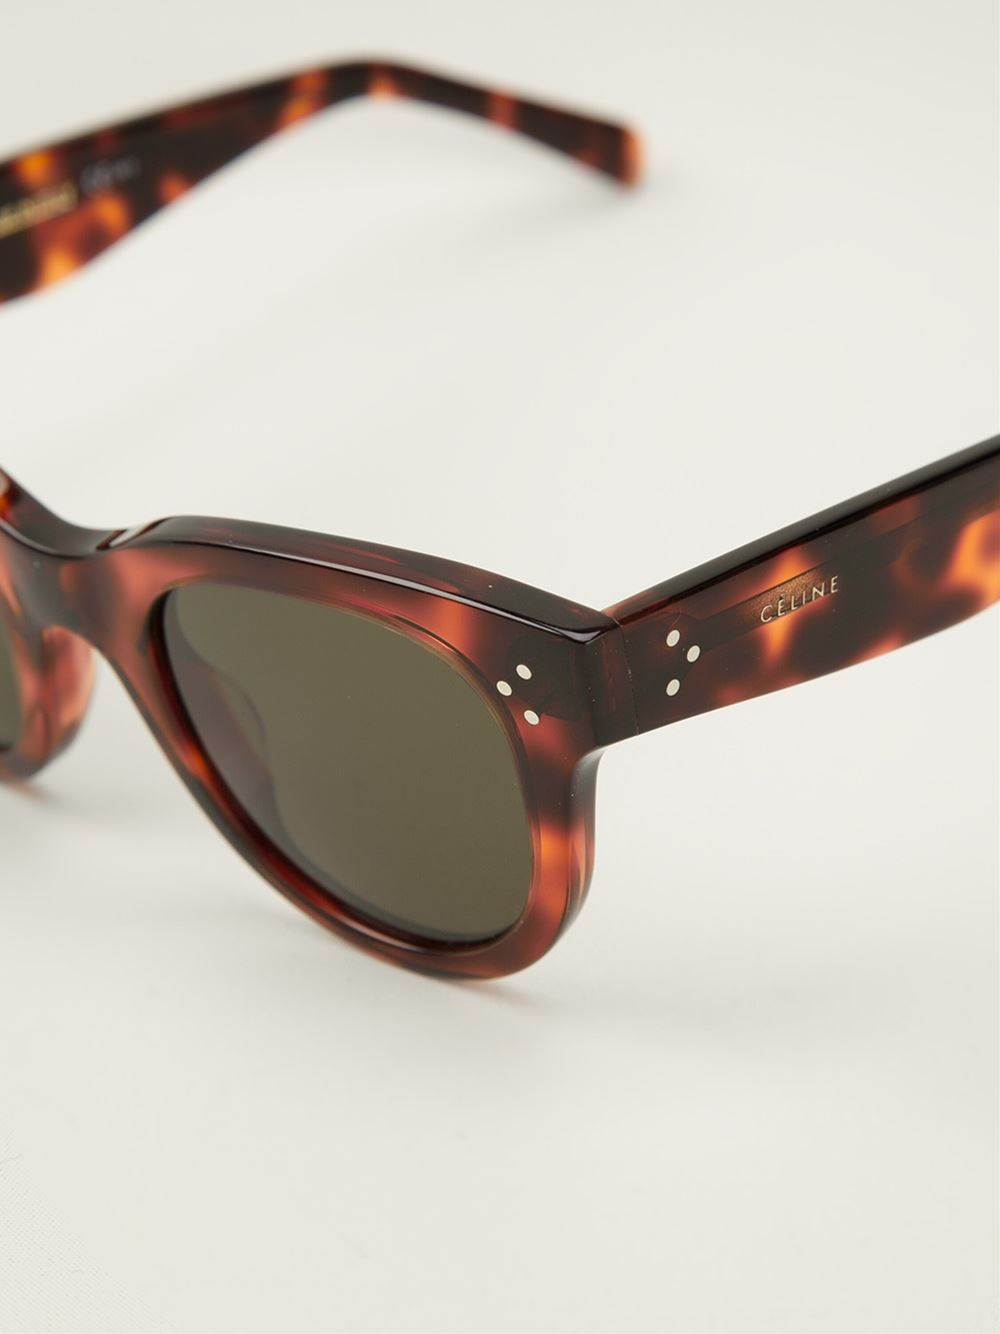 8316cabf6 Céline Baby Audrey Sunglasses in Brown - Lyst